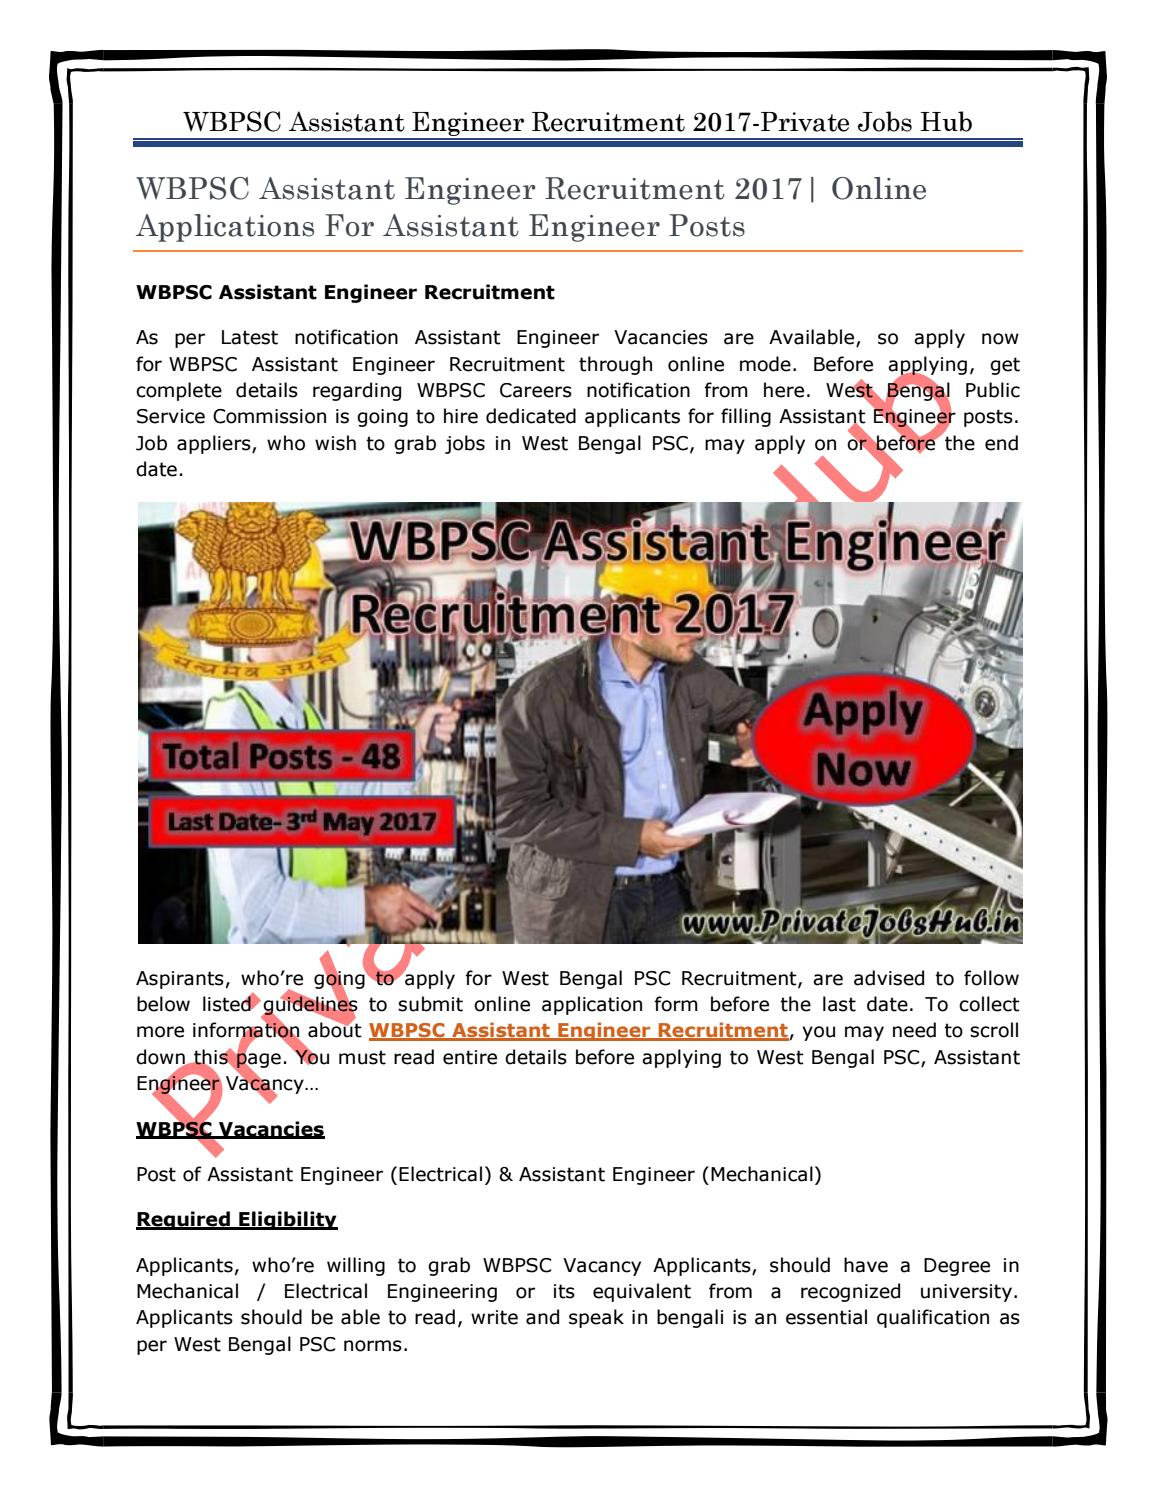 Wbpsc assistant engineer recruitment 2017 online